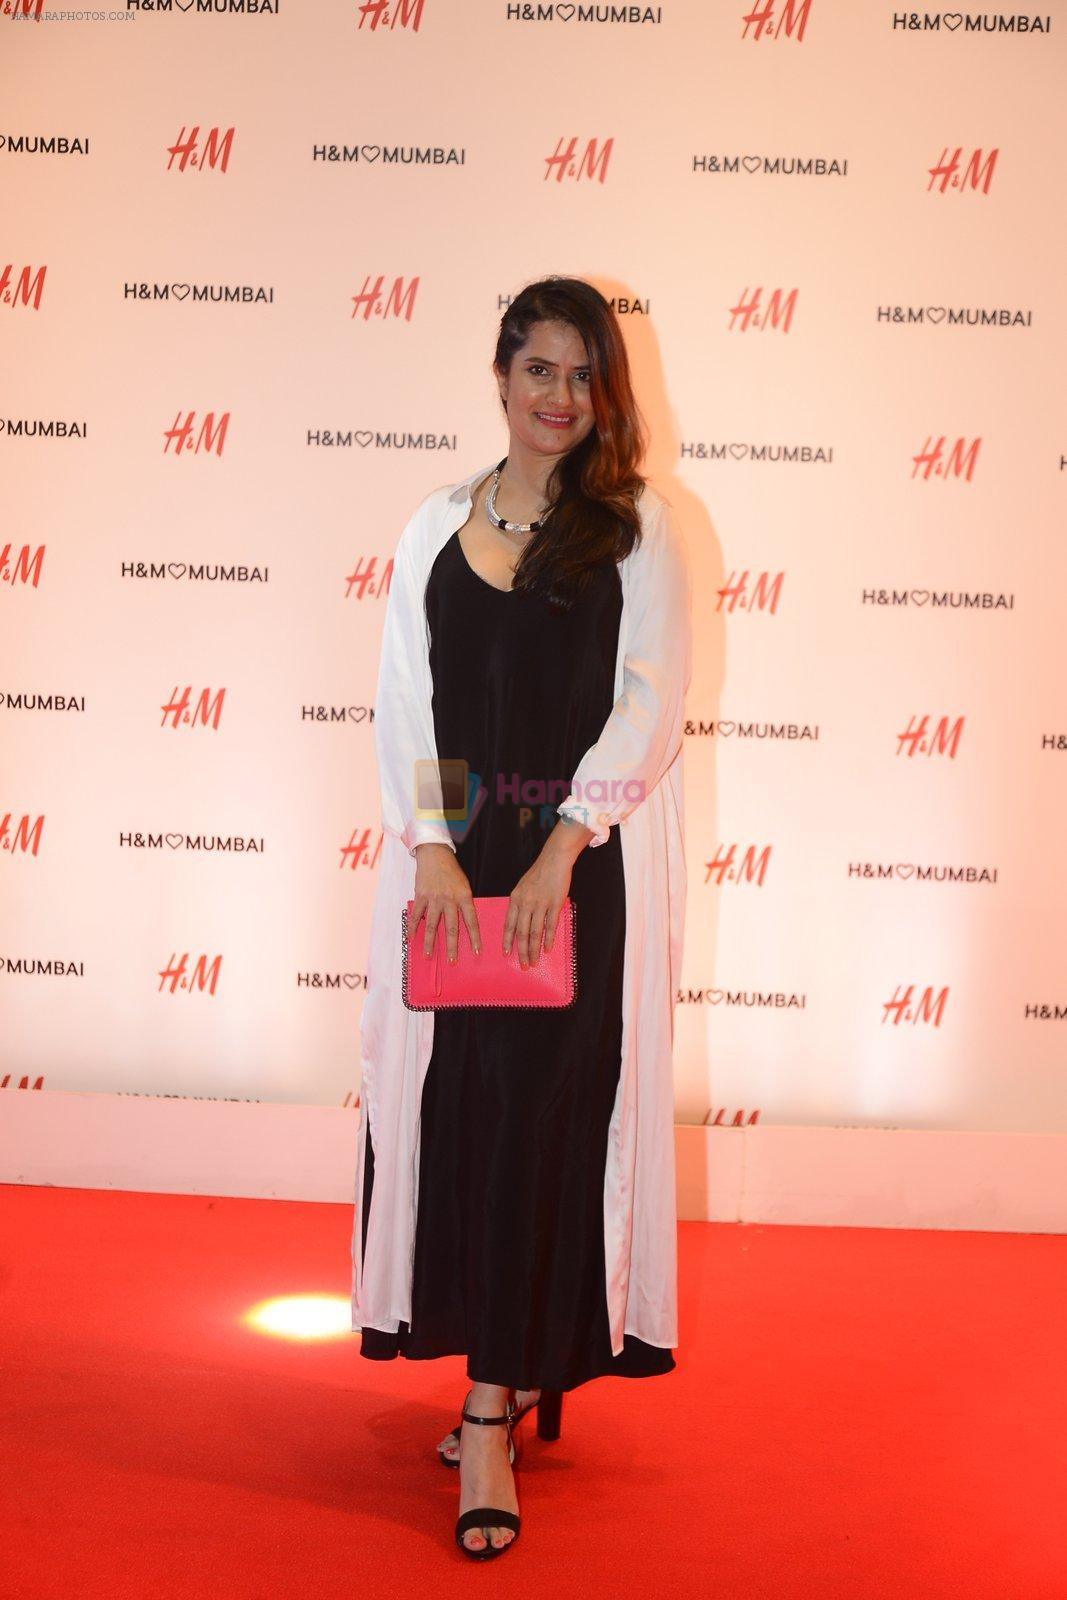 Sona Mohapatra at h&m mubai launch on 11th Aug 2016